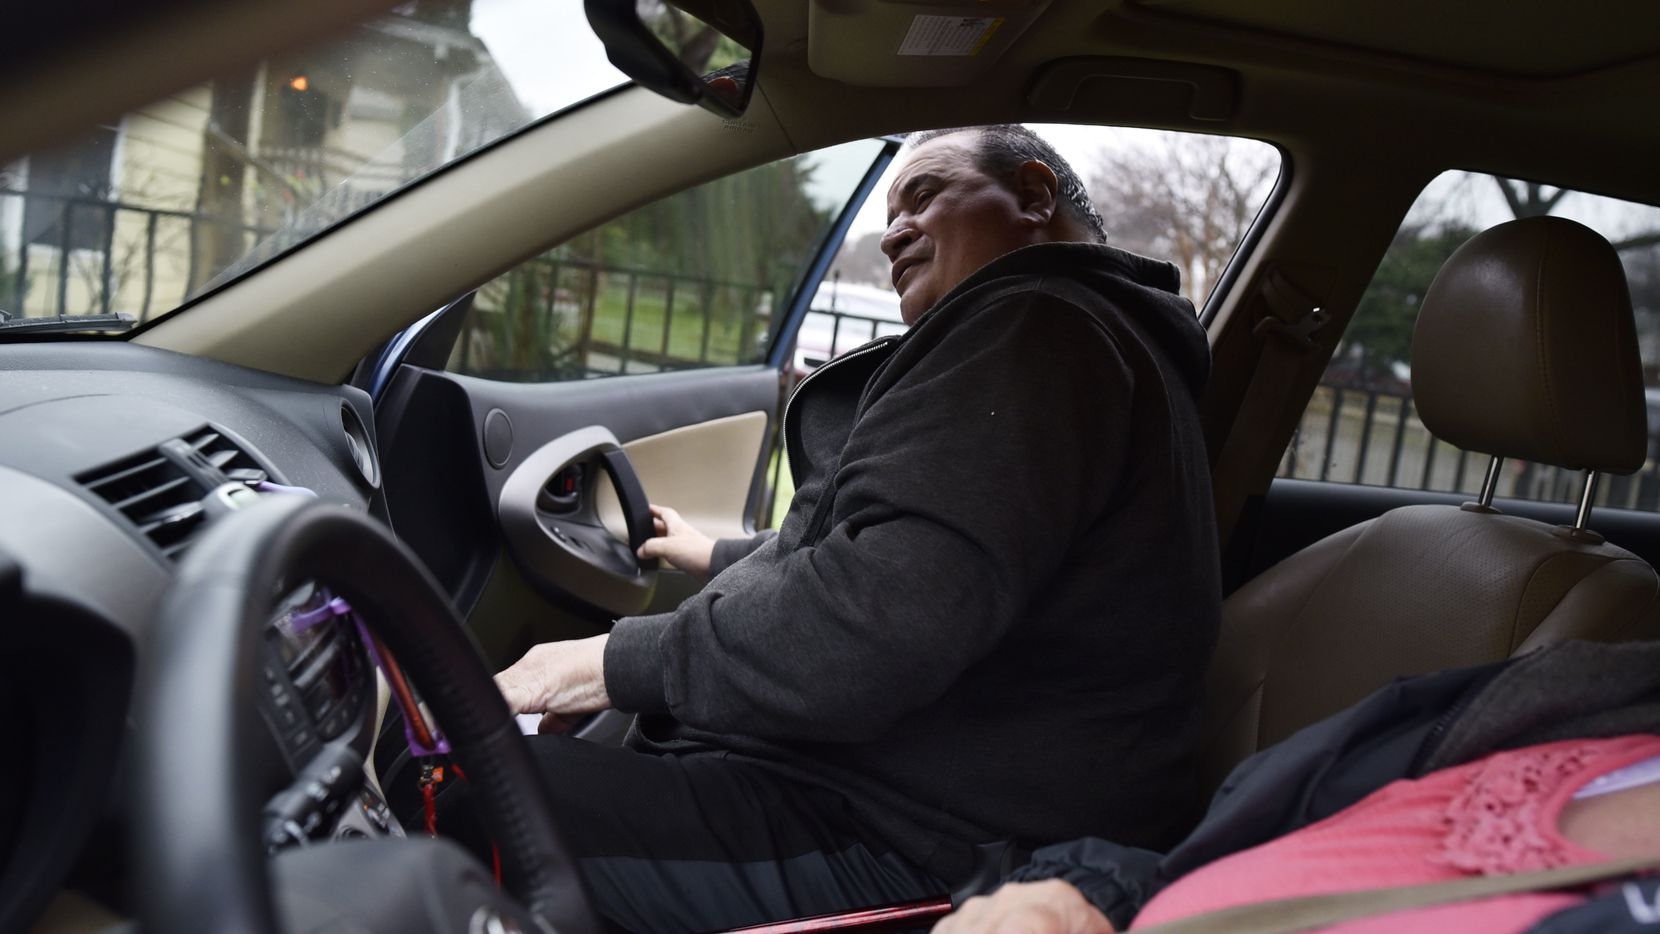 Steven Valdez, 64, enters Julia Gibson's car for his ride to a doctor's appointment. The Dallas resident, who can't walk because of a foot condition, hopes to see more transportation services for people like him.